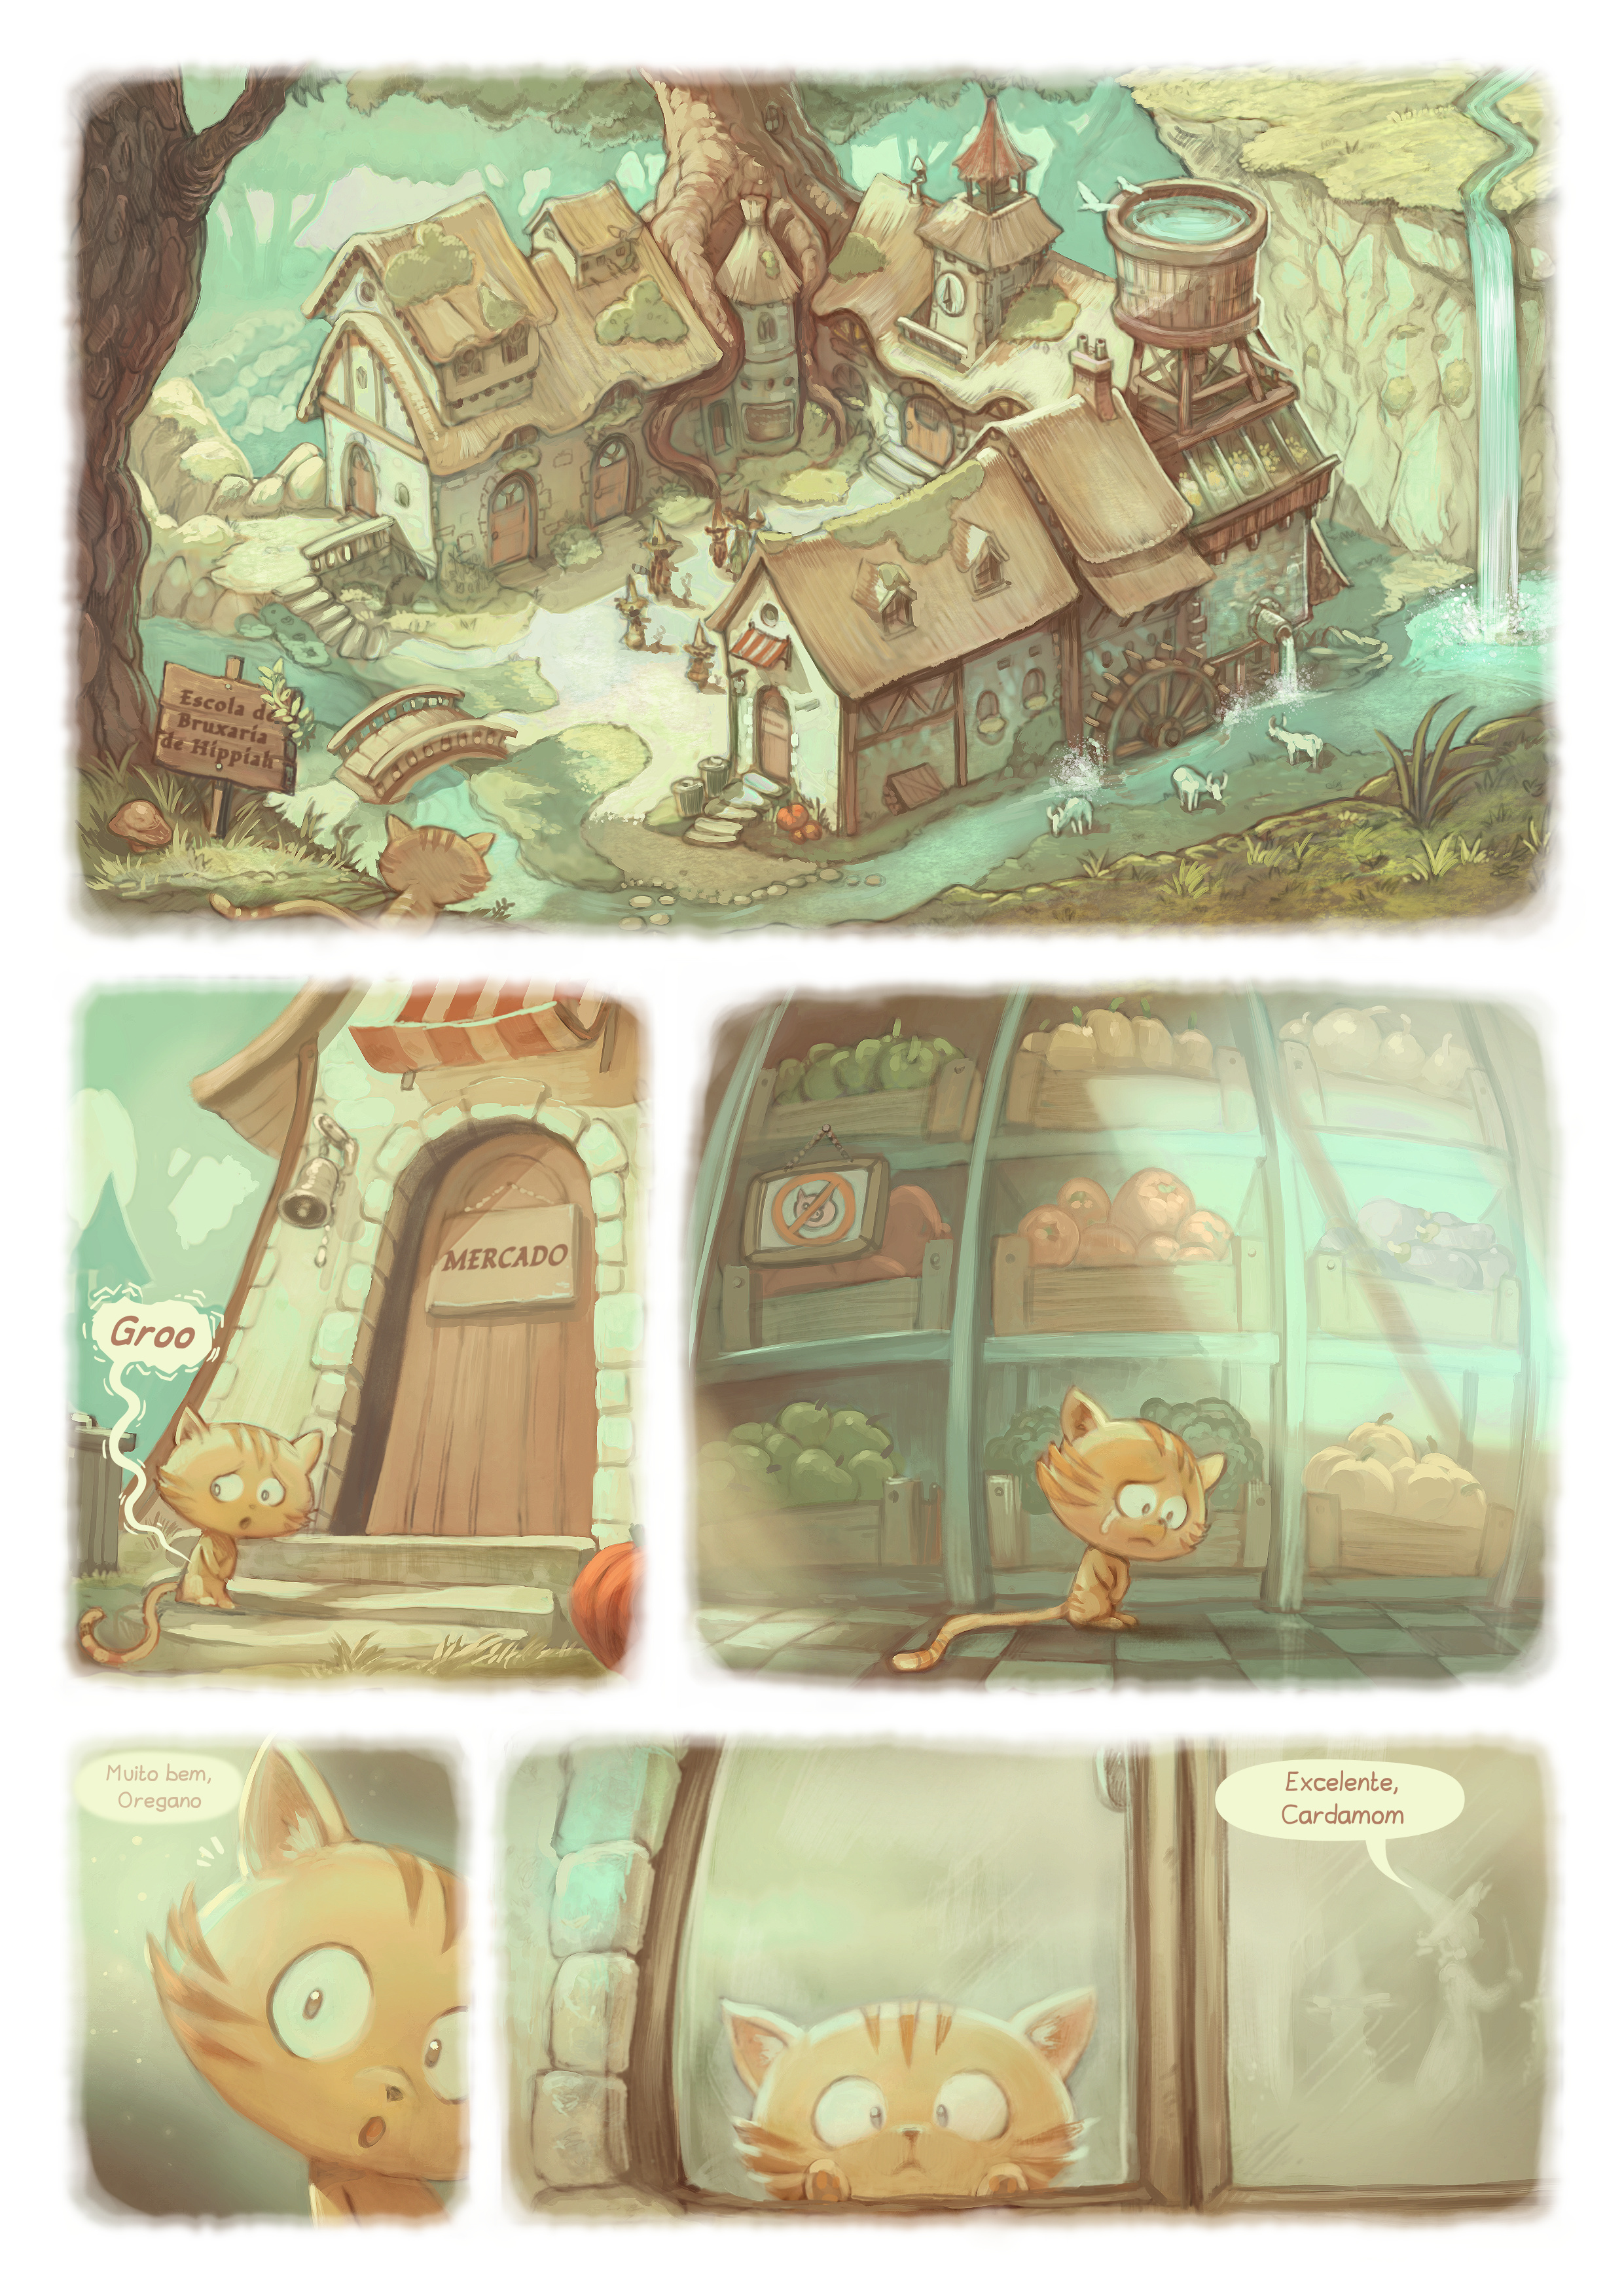 A webcomic page of Pepper&Carrot, episódio 18 [pt], página 2